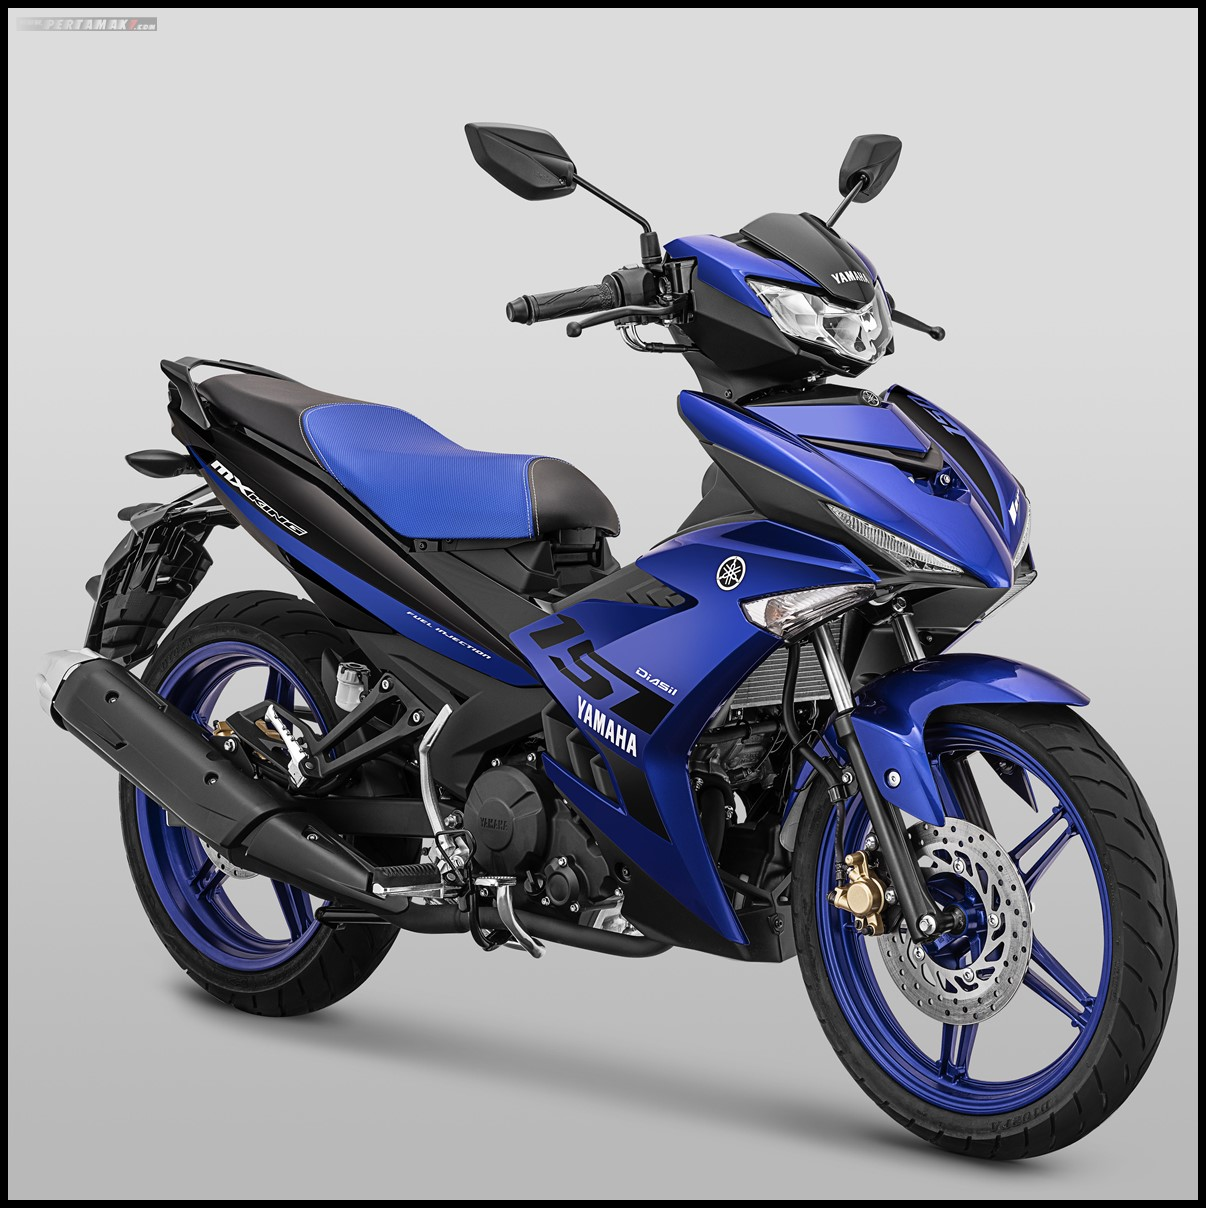 Yamaha MX KING 2019 Warna Biru P7